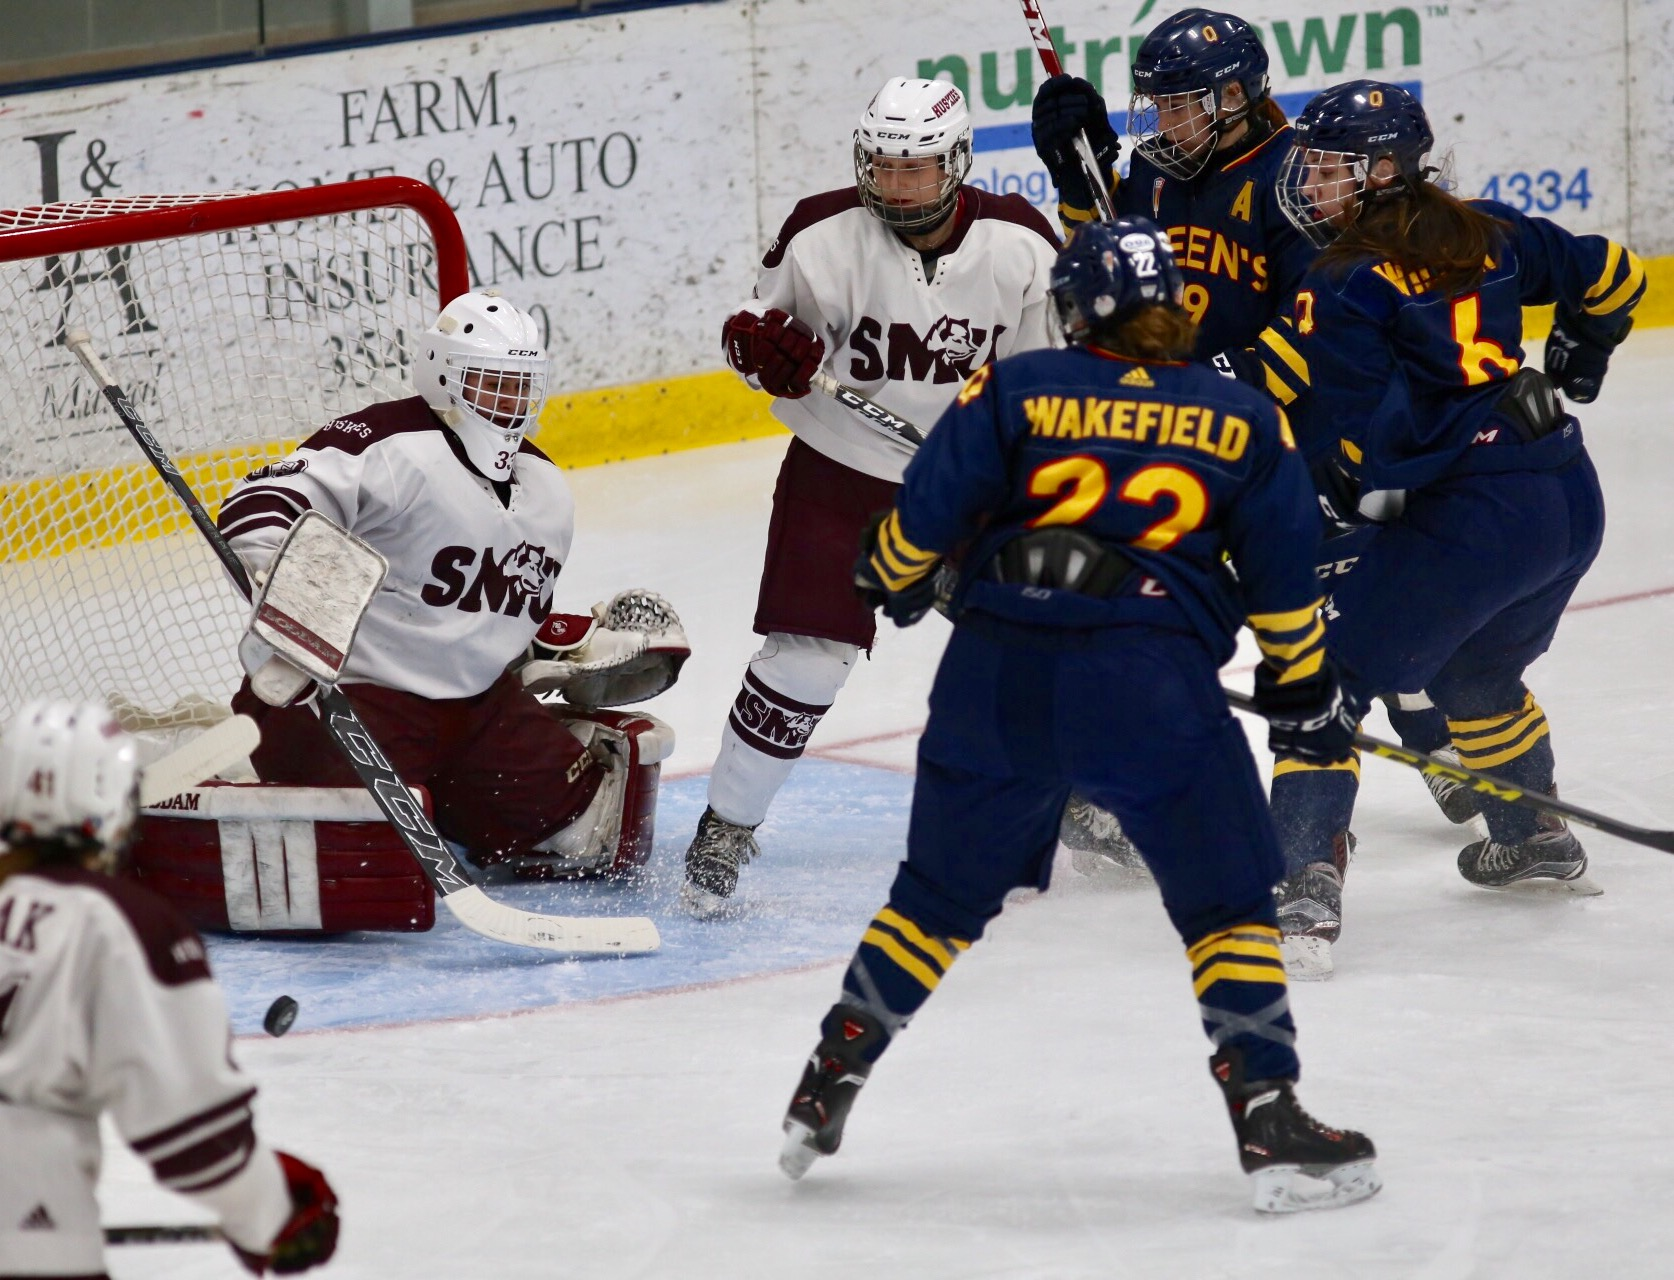 5th place 2017 U SPORTS Women's Hockey Championship: Huskies take down host Gaels 4-1 for fifth-place finish